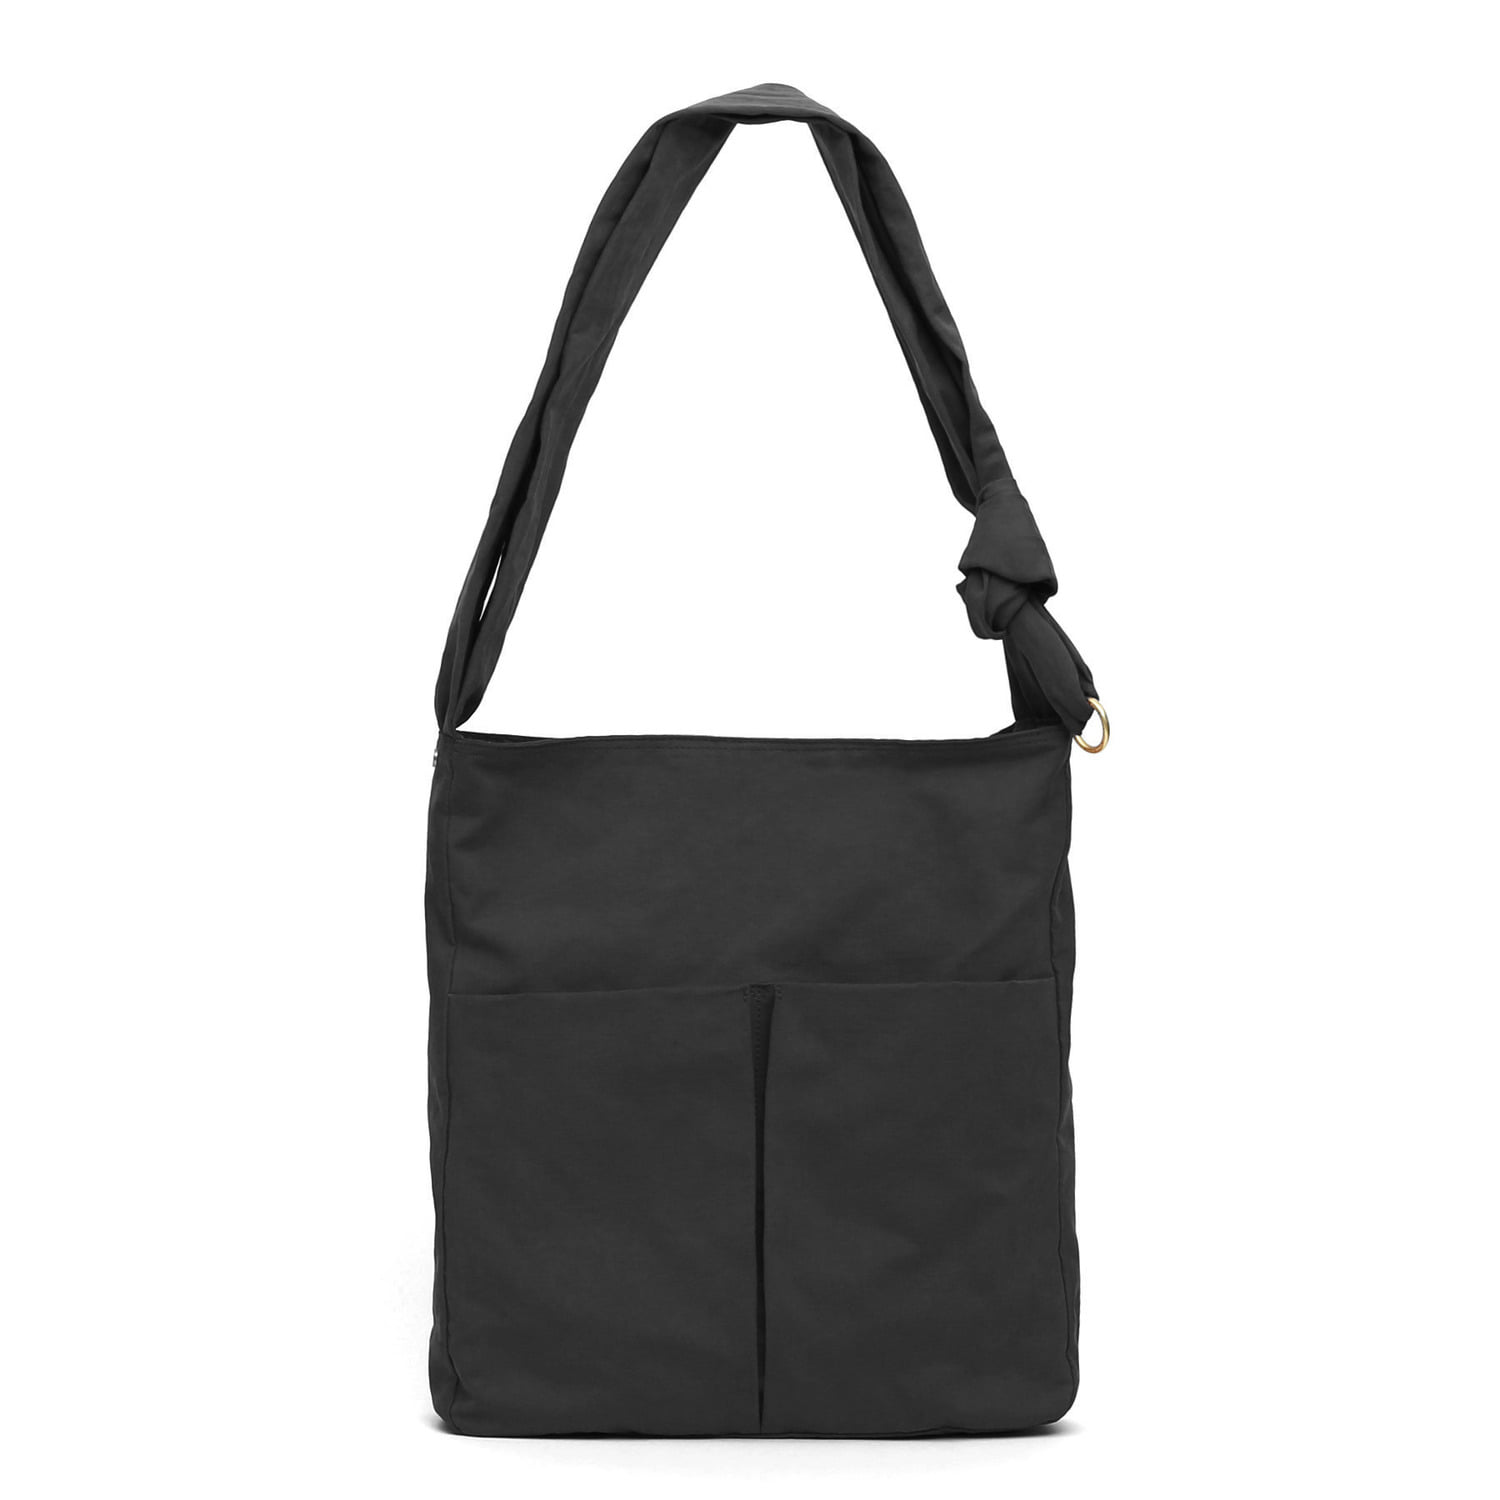 SQUARE BAG / WRINKLE / NPC / DARK BLACK